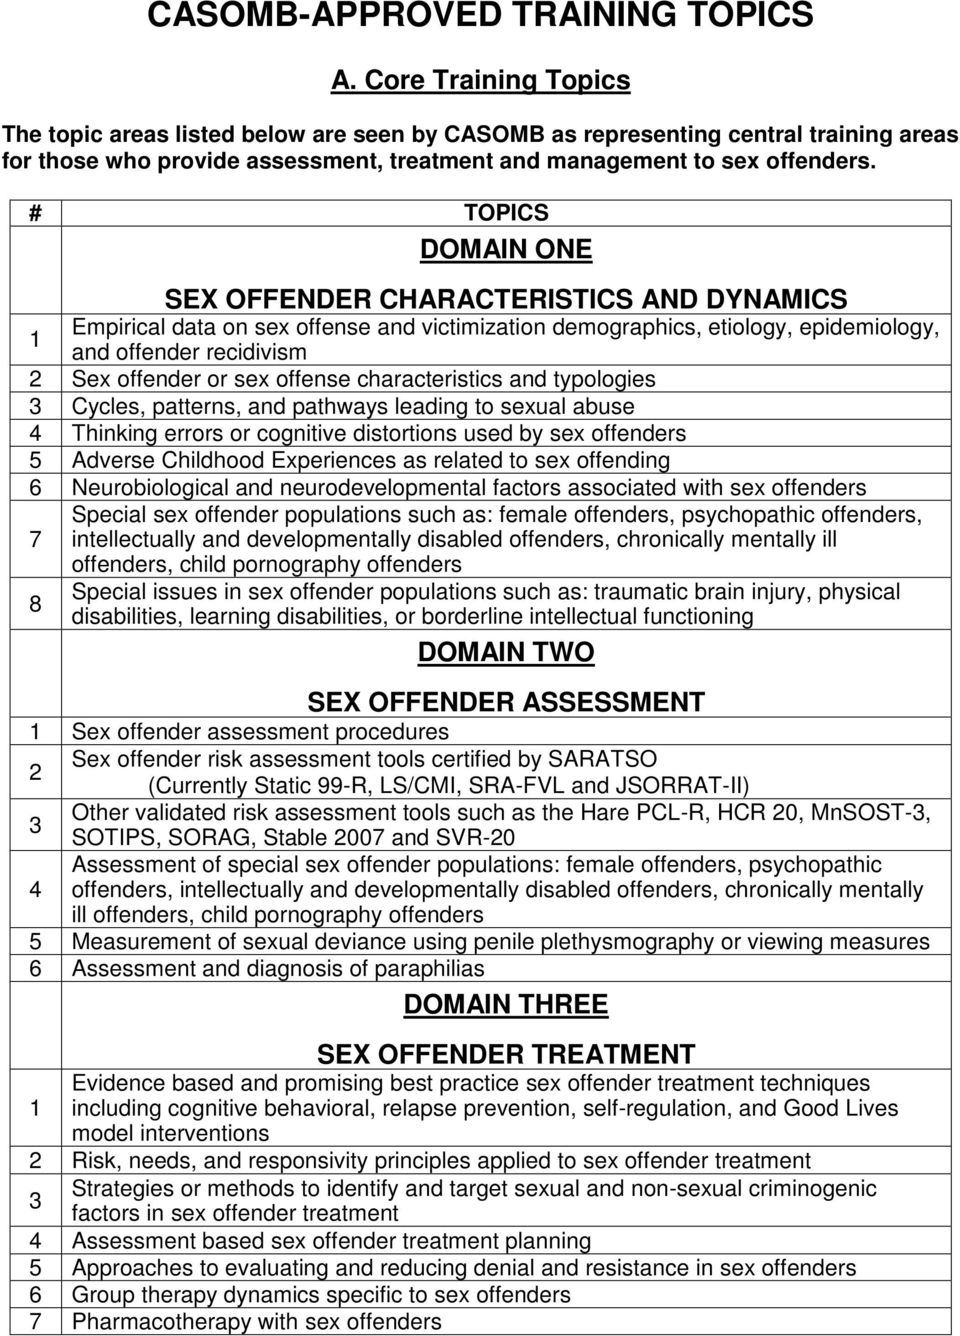 # TOPICS DOMAIN ONE SEX OFFENDER CHARACTERISTICS AND DYNAMICS Empirical data on sex offense and victimization demographics, etiology, epidemiology, 1 and offender recidivism 2 Sex offender or sex